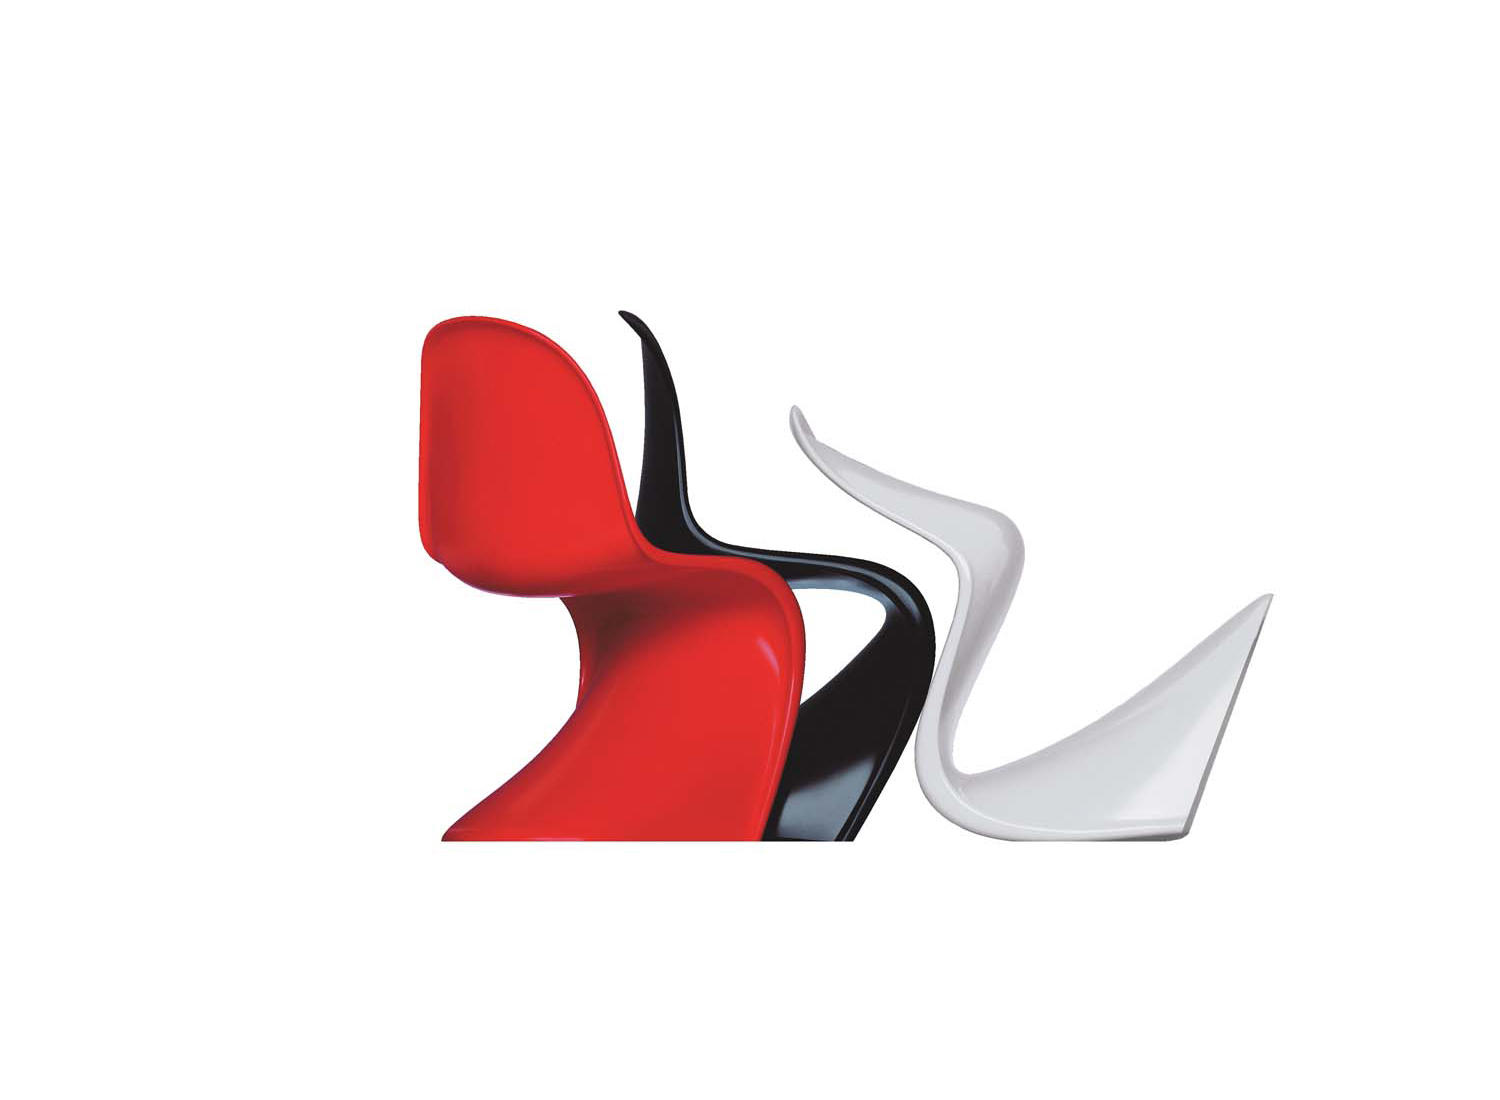 panton chair classic st hle von vitra architonic. Black Bedroom Furniture Sets. Home Design Ideas